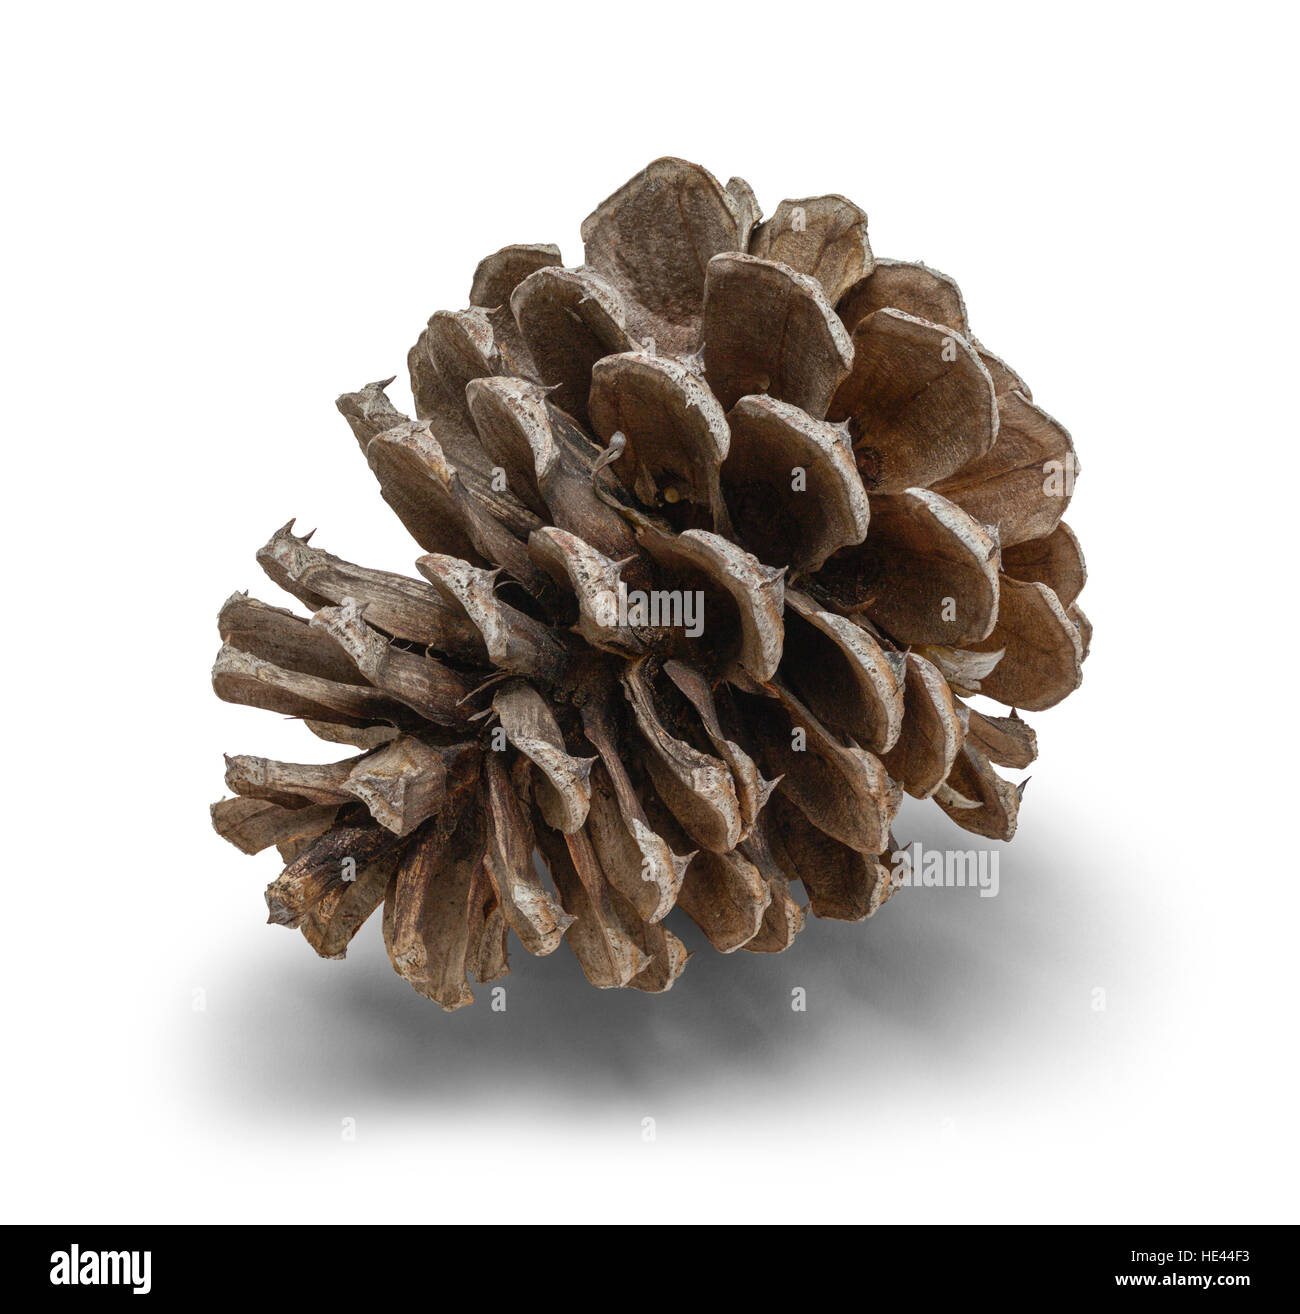 One Small Pine Cone Isolated on White Background. - Stock Image